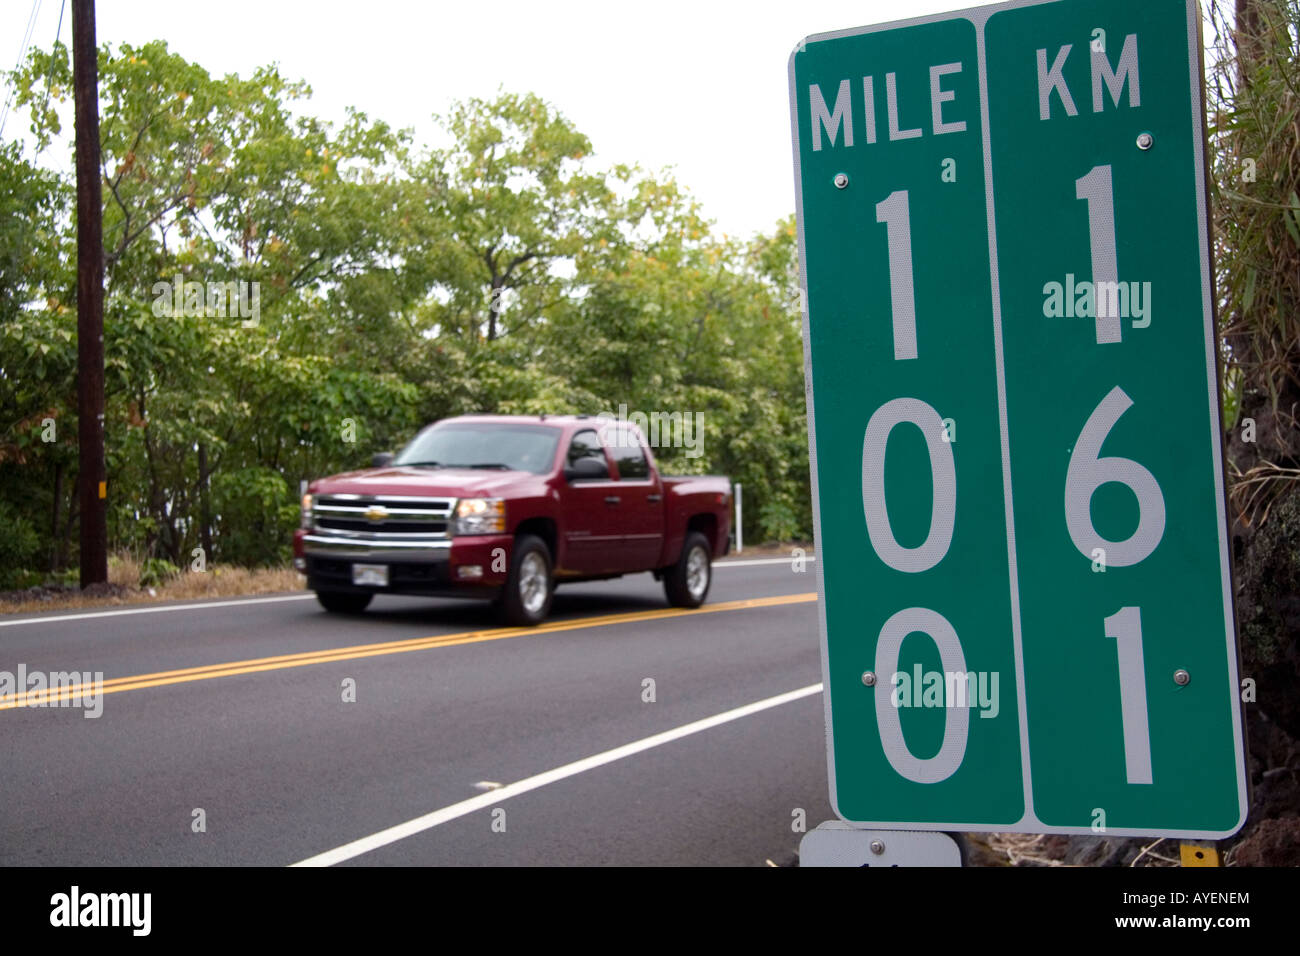 Roadside mile marker showing measurements in miles and kilometers on the Big Island of Hawaii - Stock Image